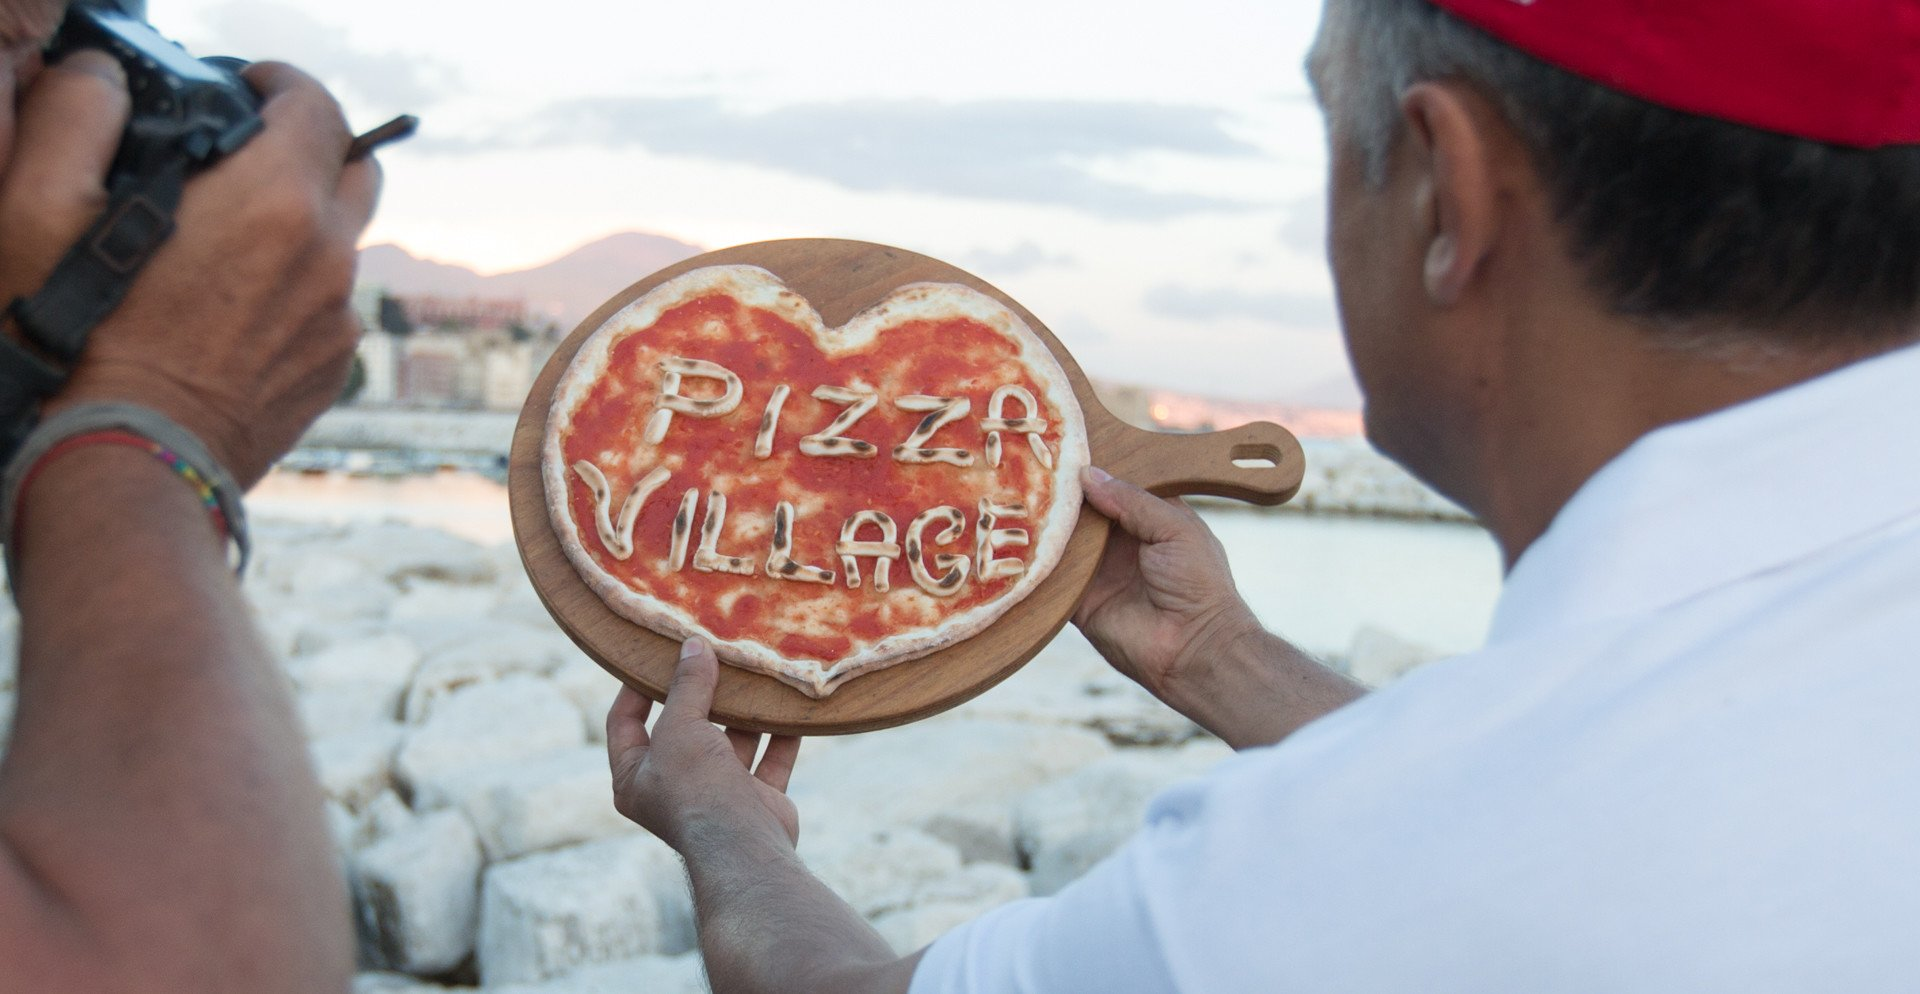 Napoli Pizza Village Festival in Naples and Pompeii 2020 - Best Time